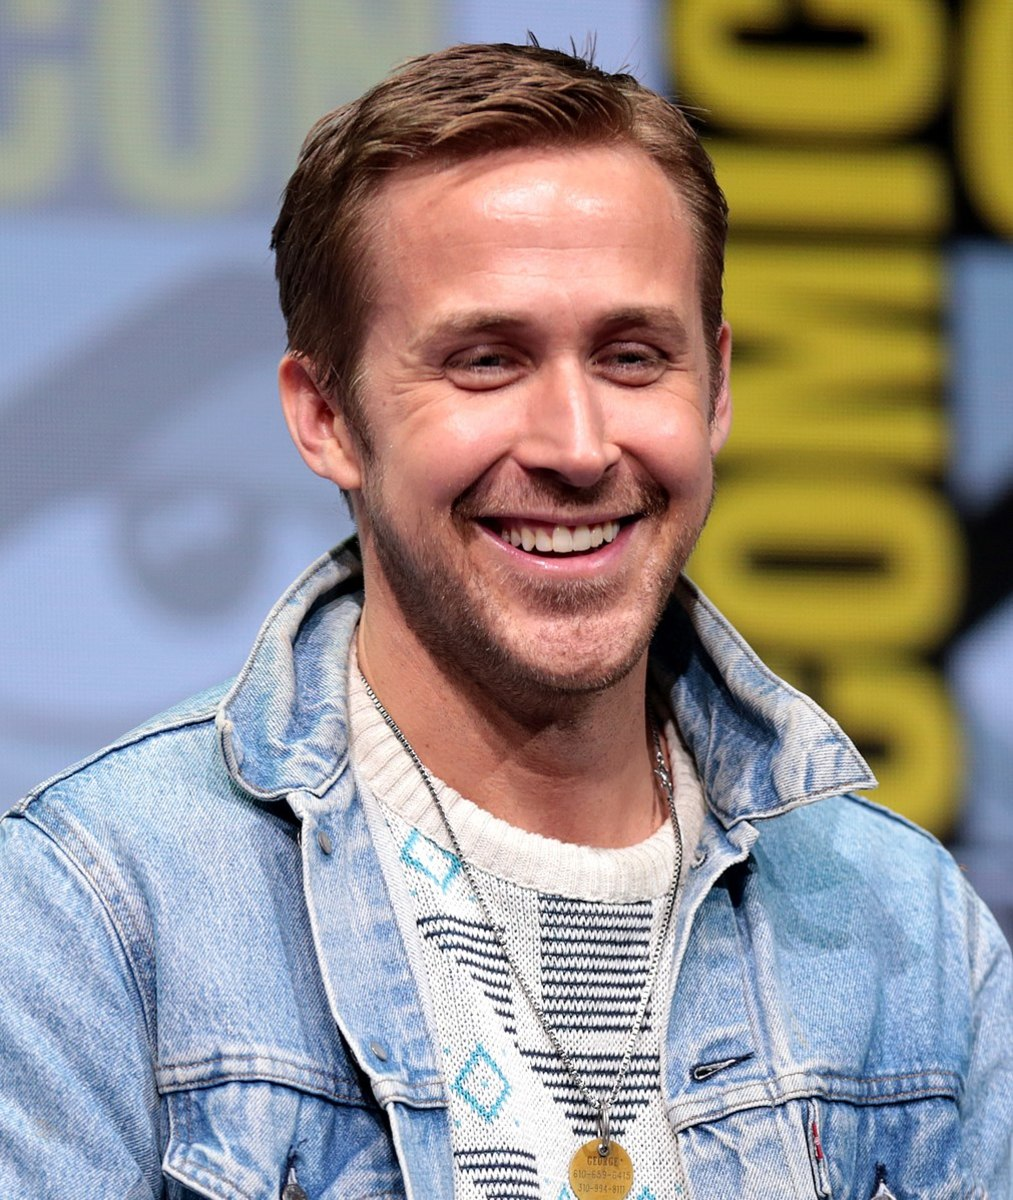 Ryan Gosling. Need I say more?